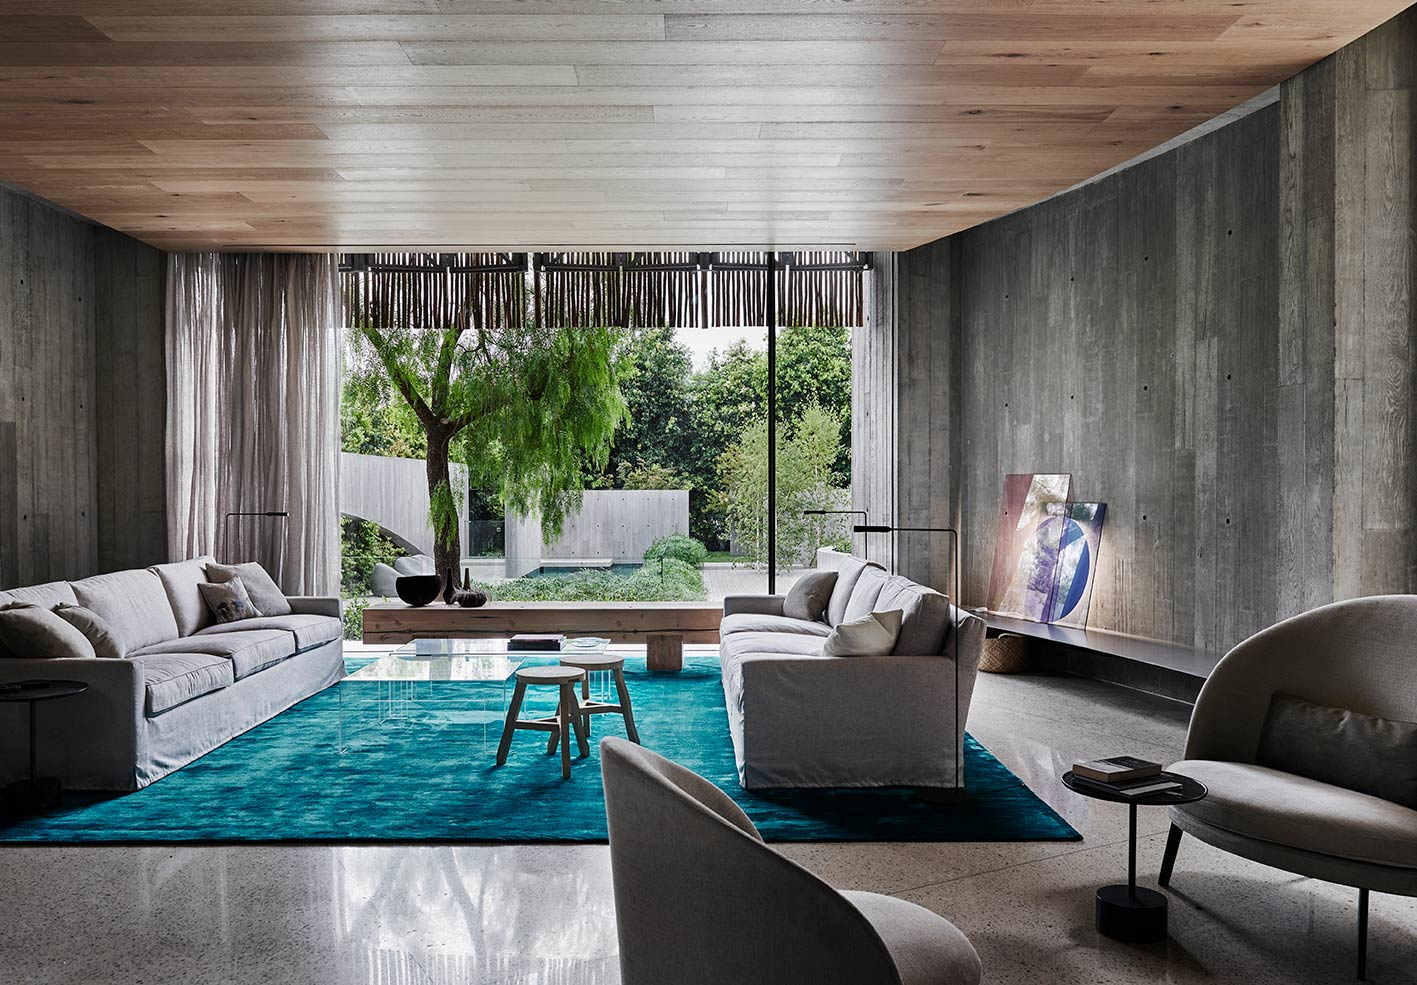 Australian interior design awards reveals country 39 s best homes for Australian home interior designs